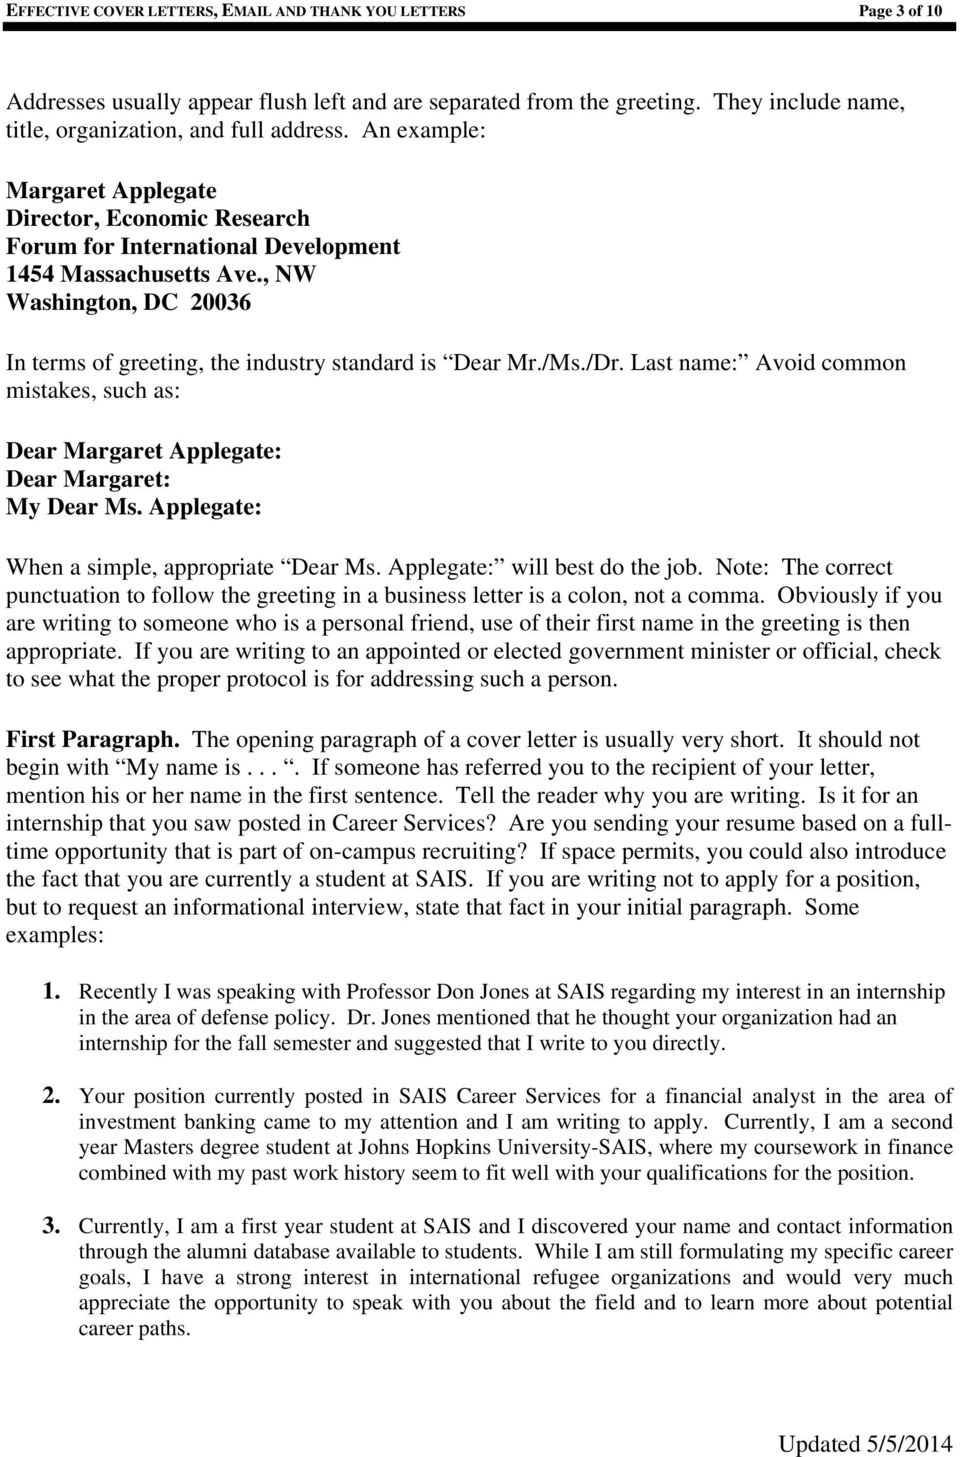 EFFECTIVE COVER LETTERS, - PDF